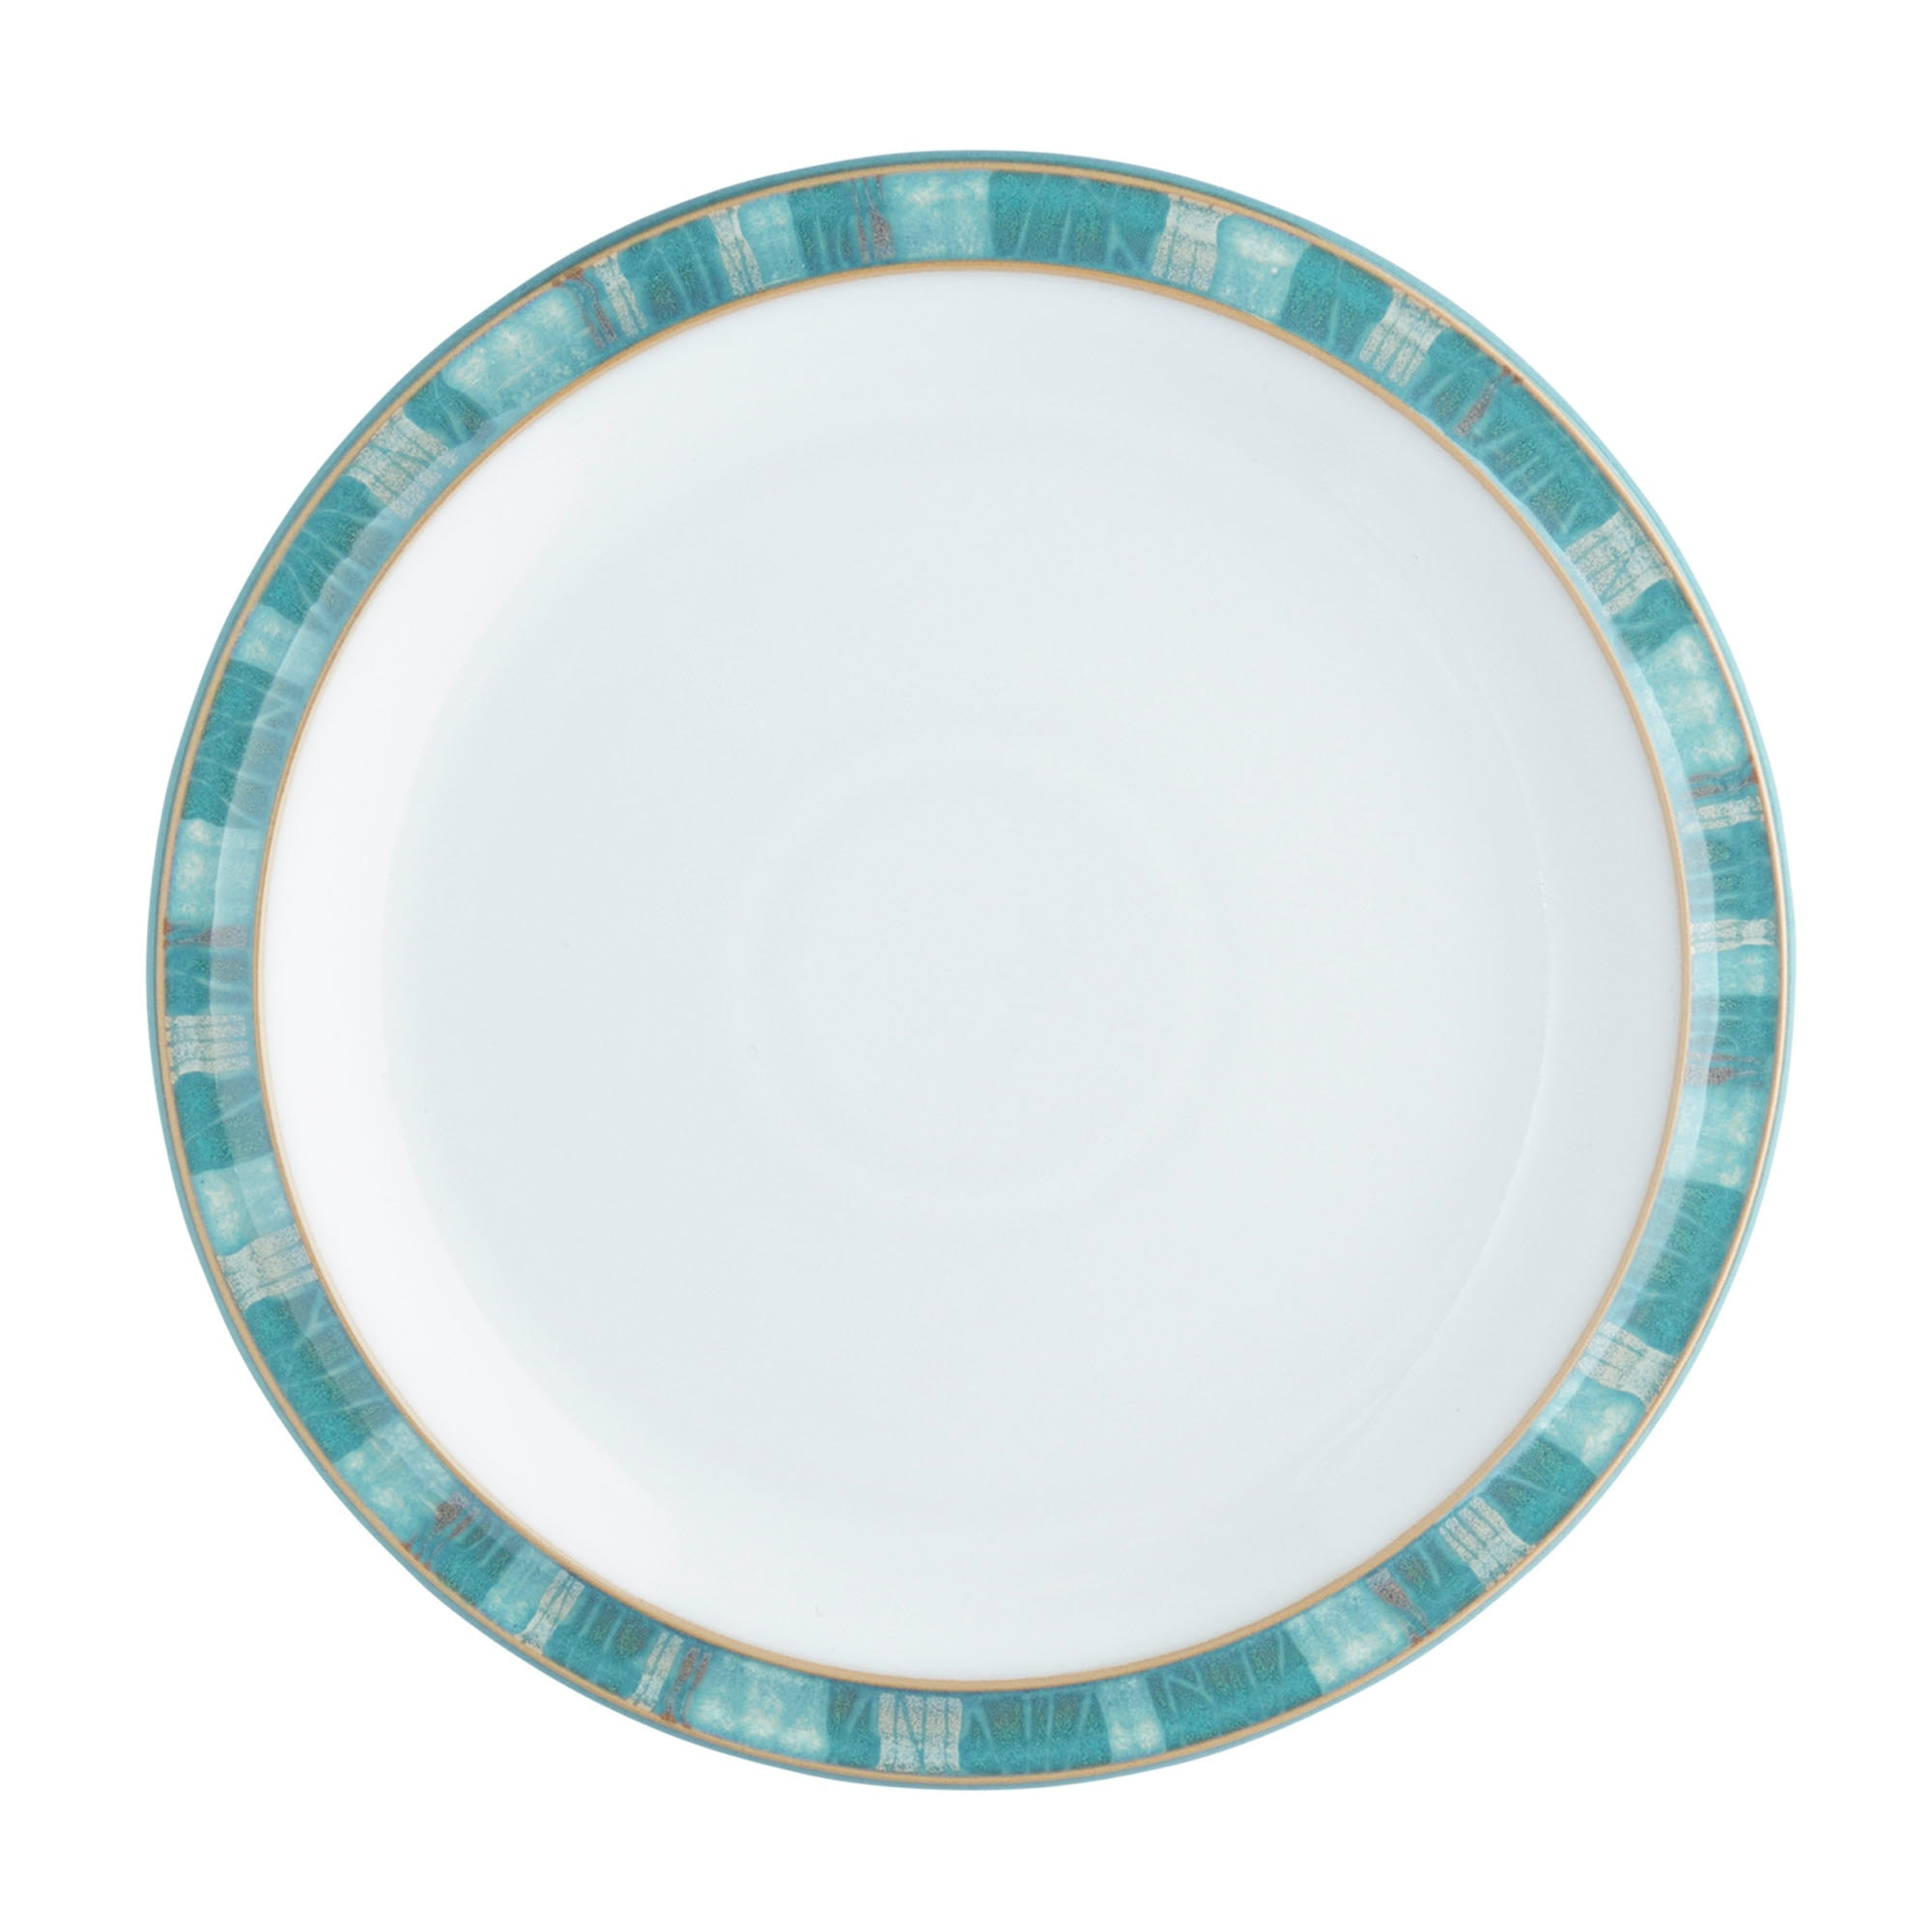 Compare prices for Azure Coast Dinner Plate